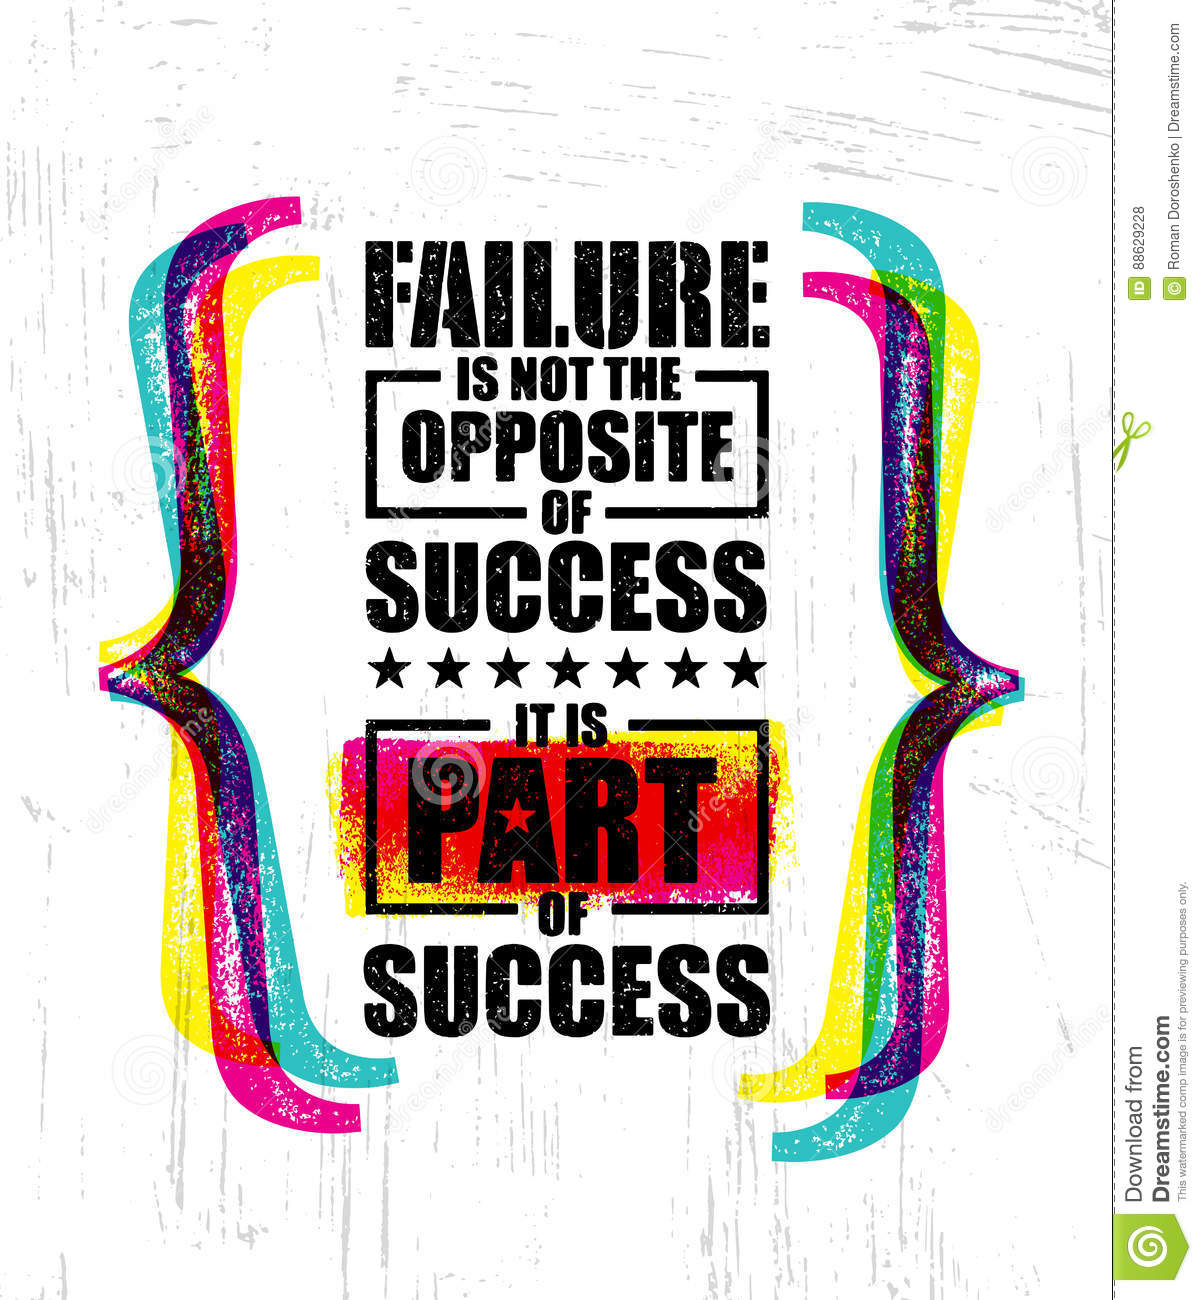 Motivational Quotes About Success: Failure Is Not The Opposite Of Success. It Is Part Of